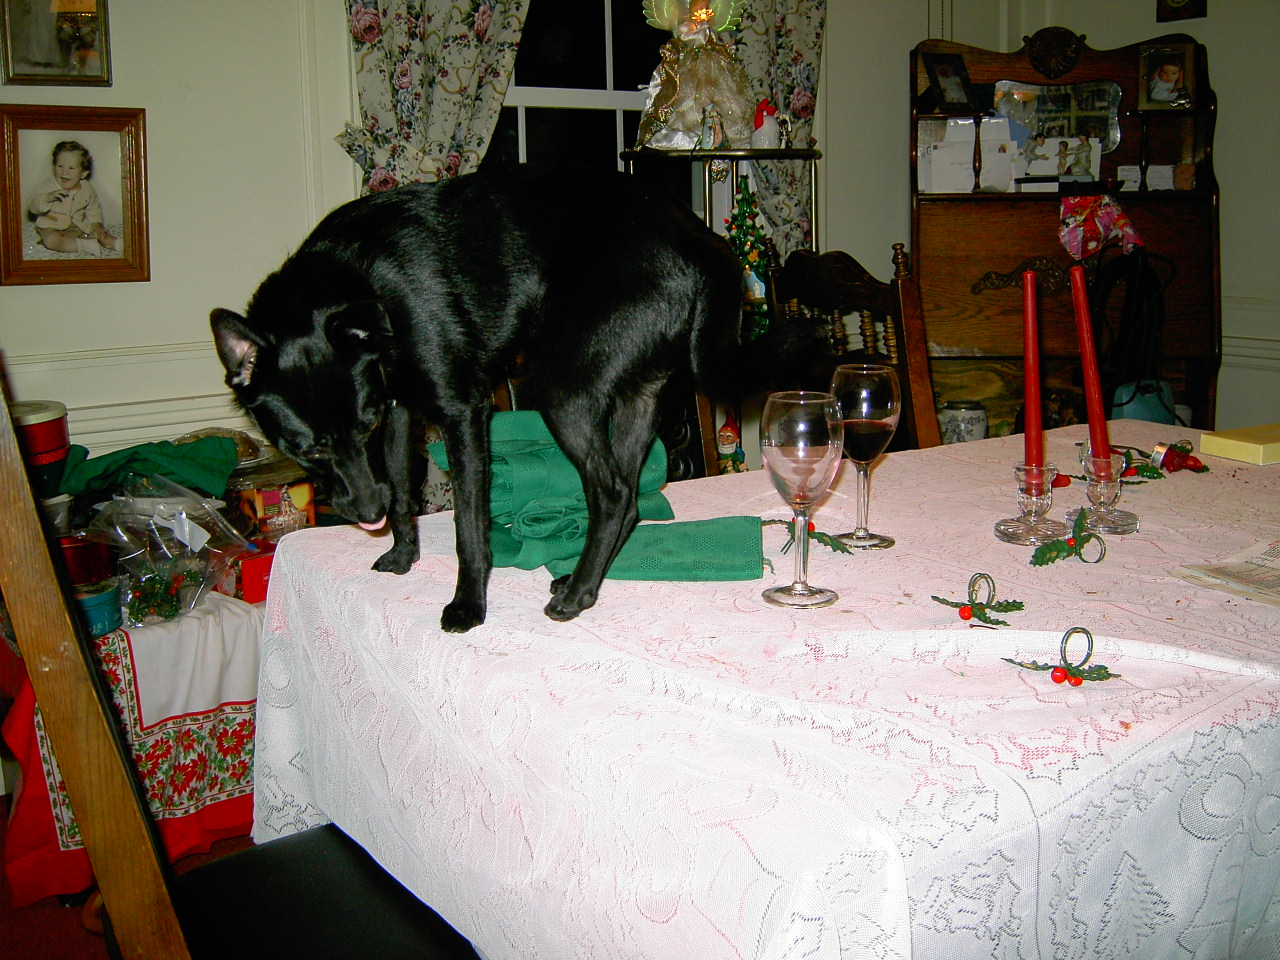 Small black dog on Christmas dinner table